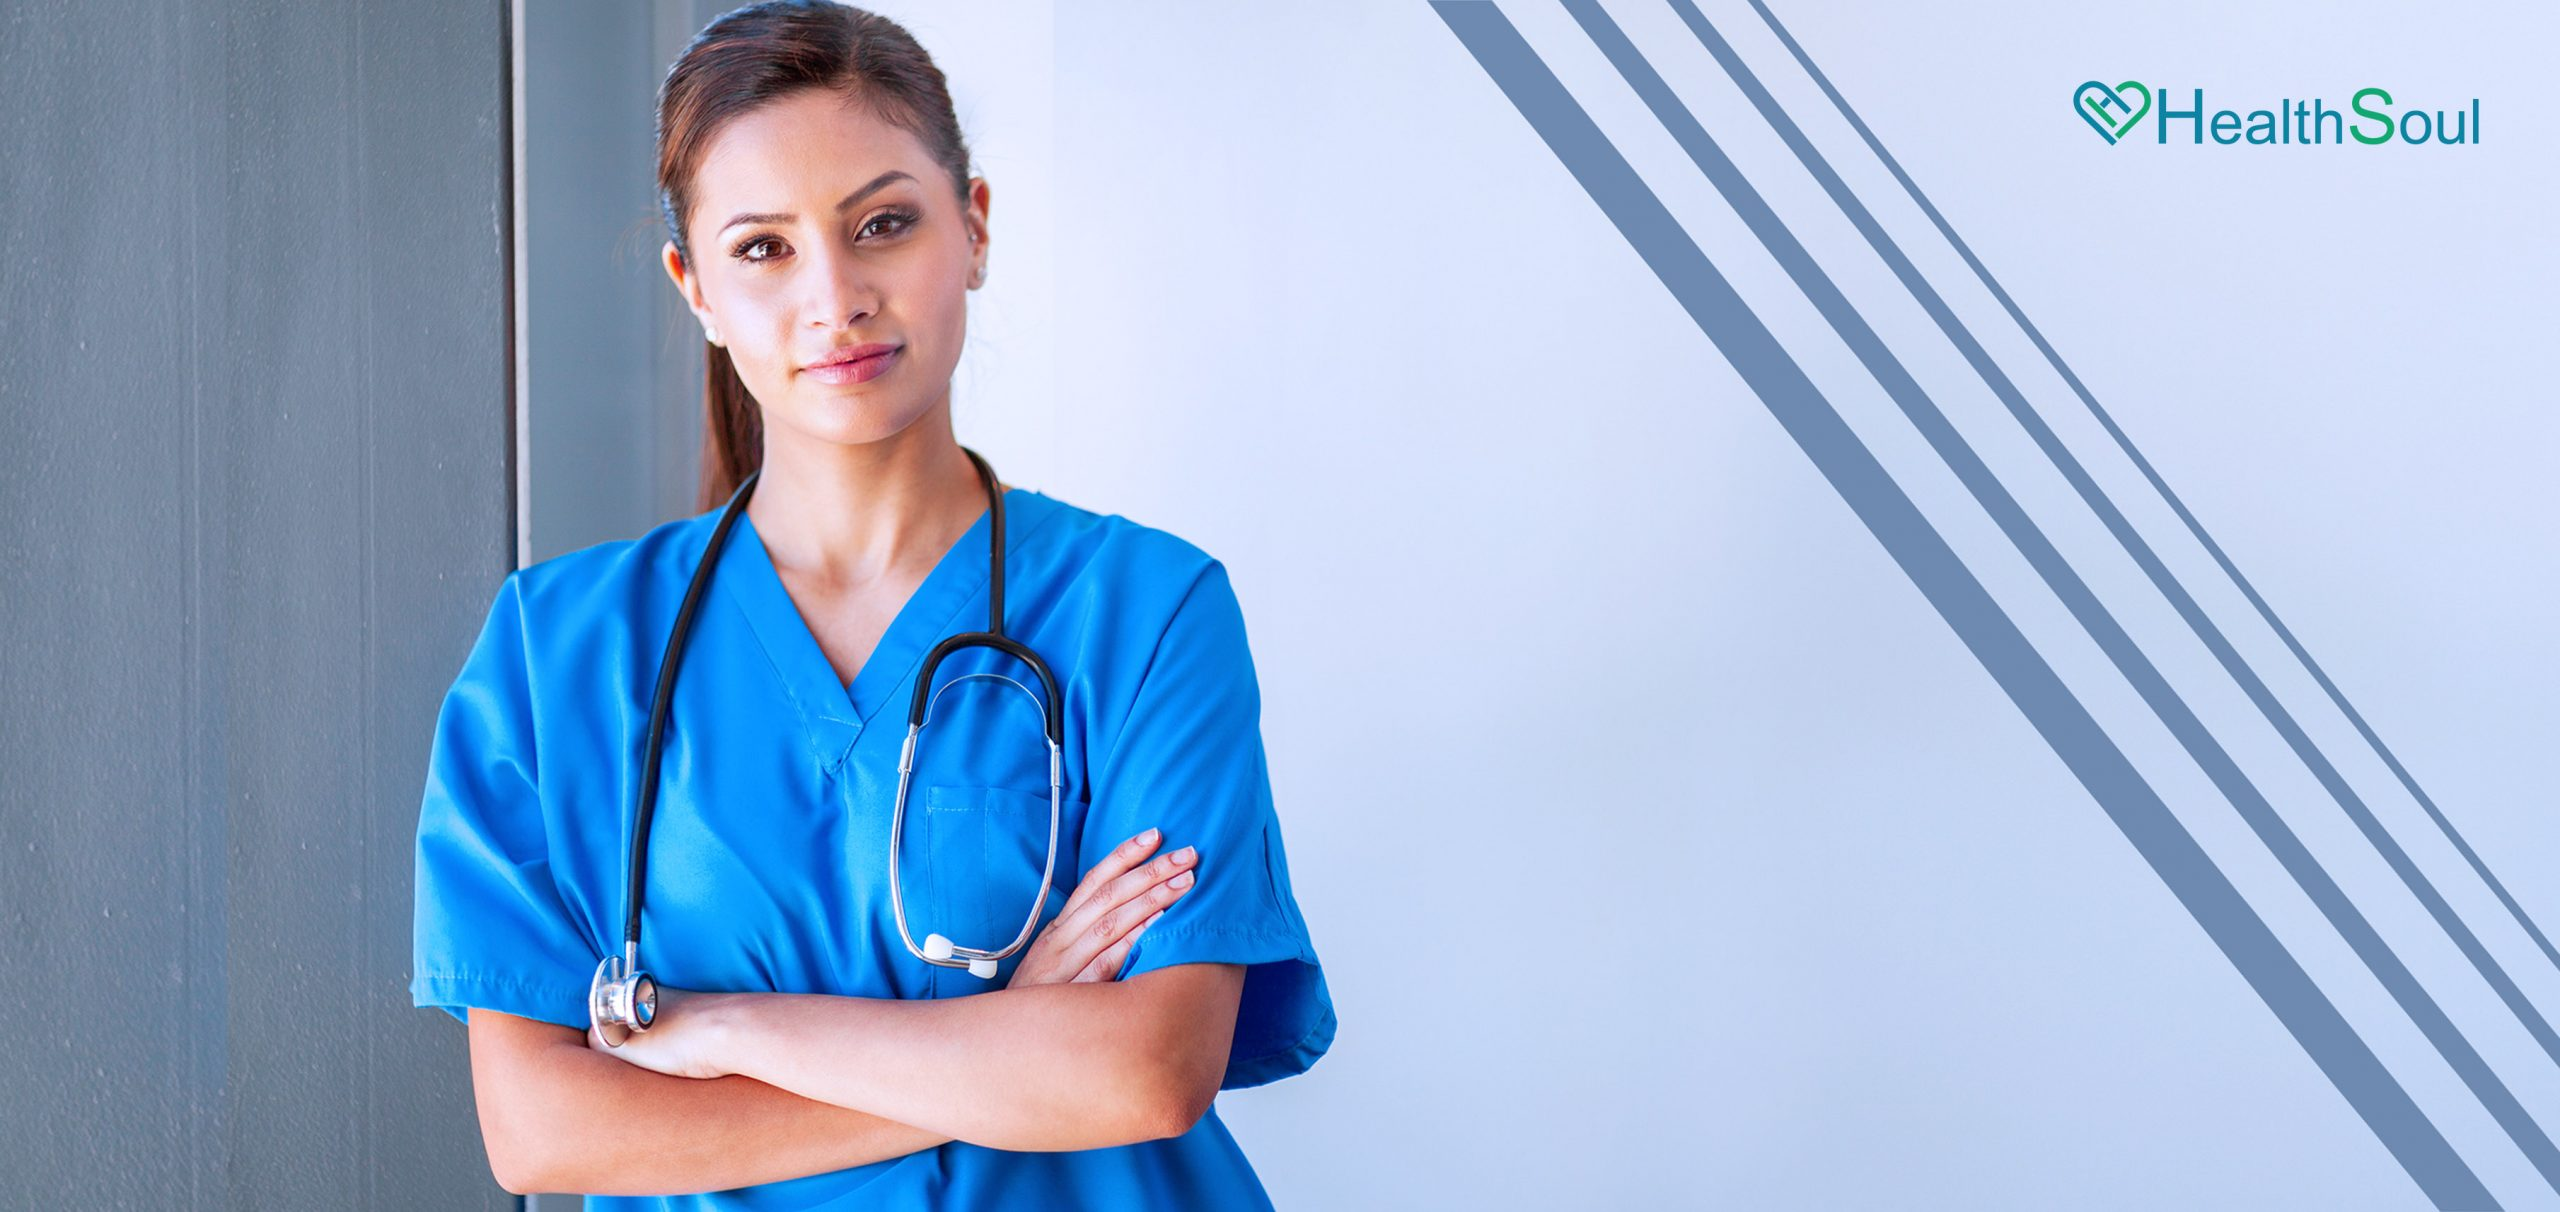 Top Tips To Easily And Quickly Become A Nurse | HealthSoul